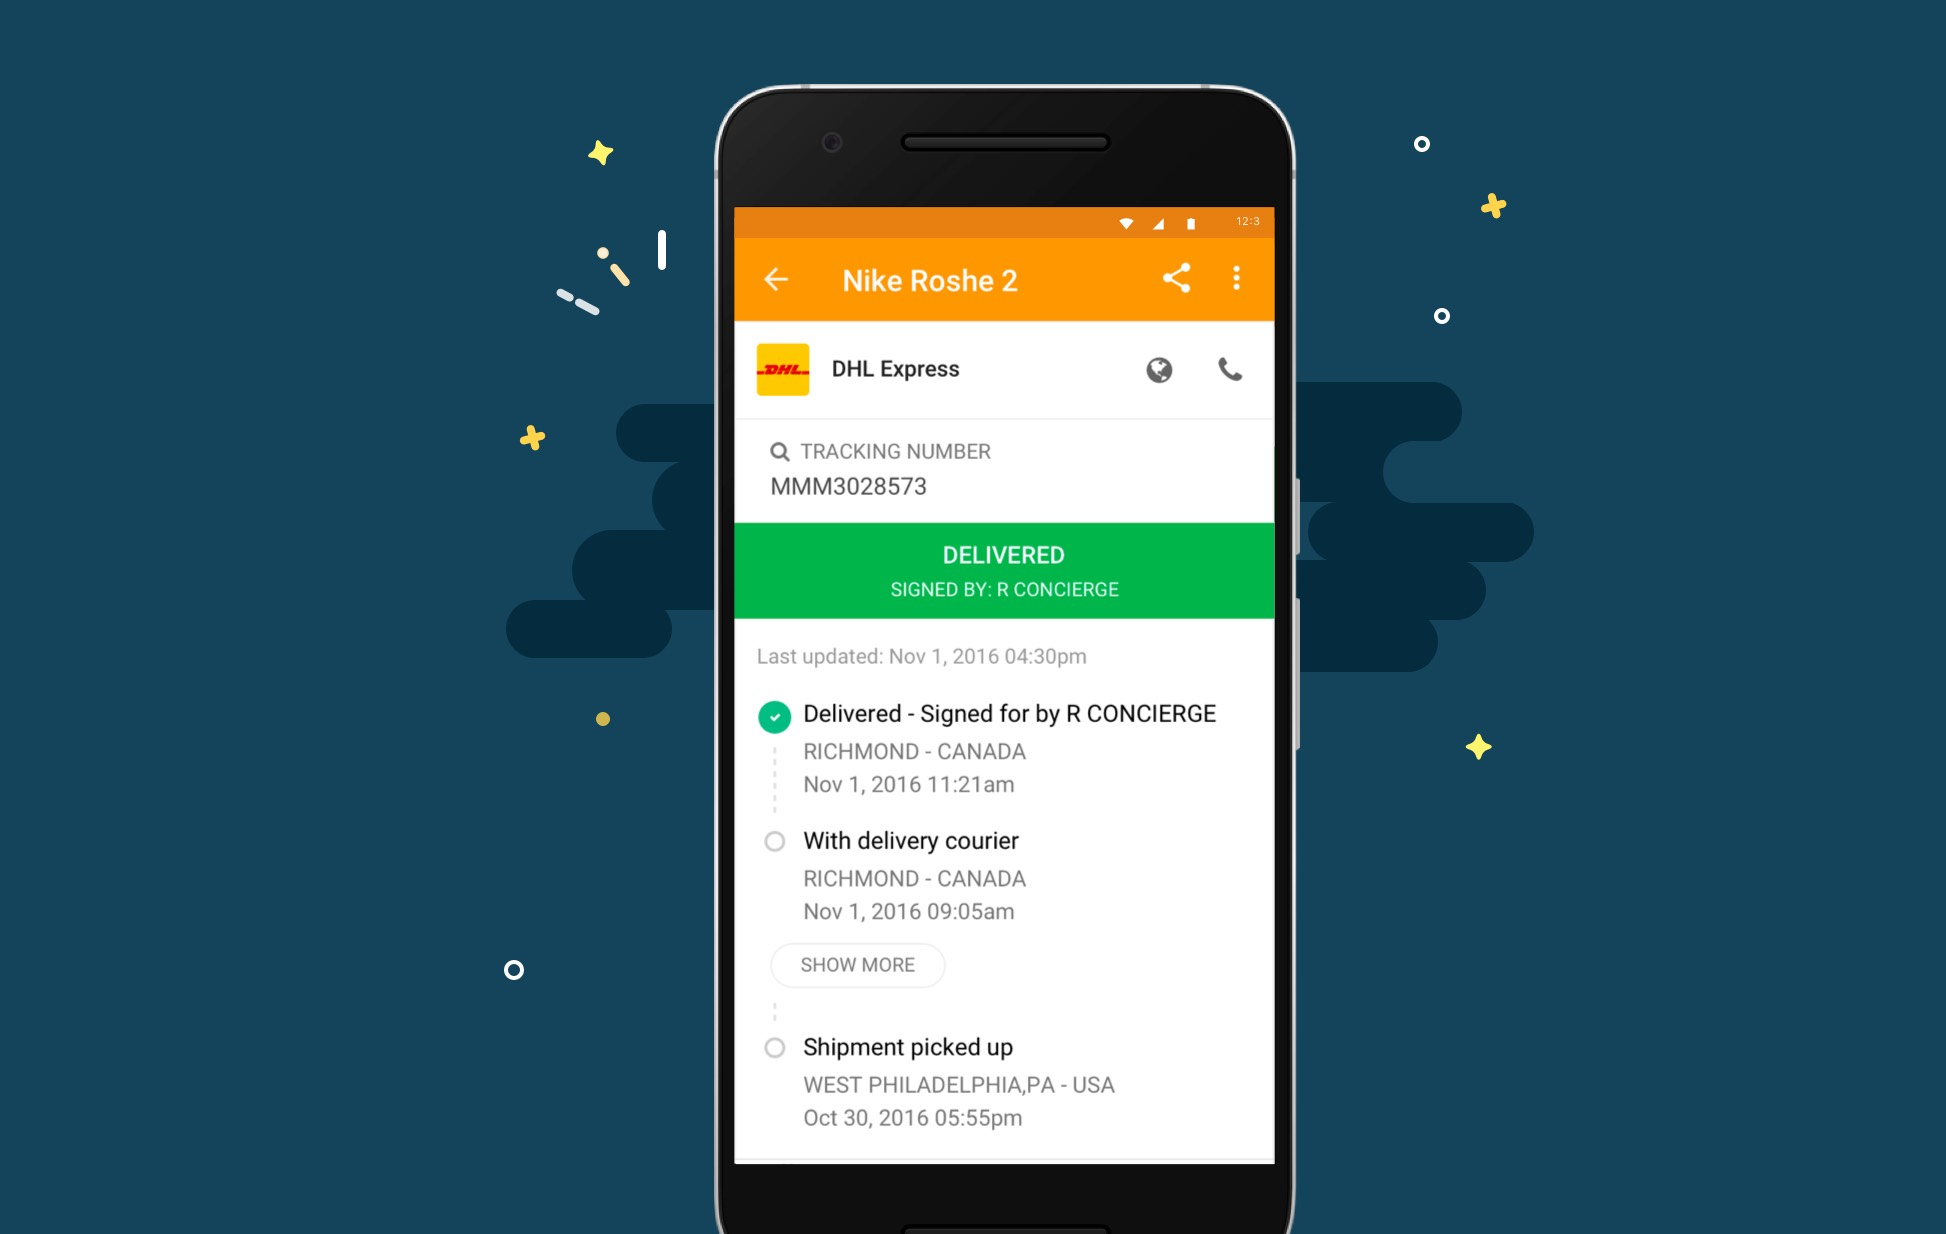 AfterShip For Android Got A New Design